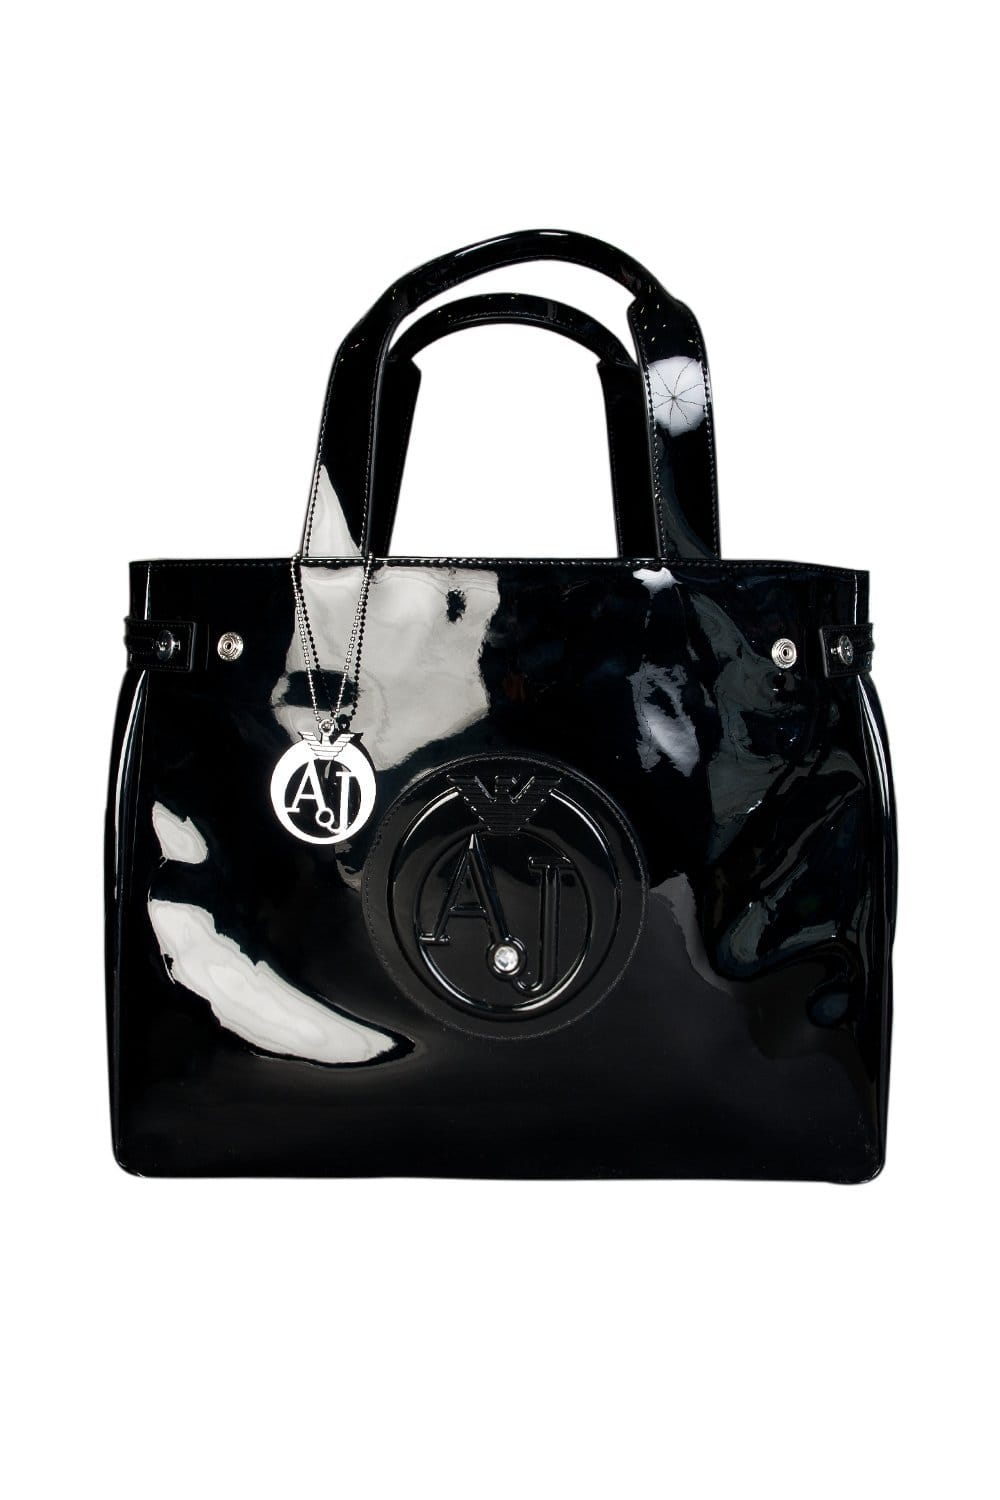 e2dbed12e59b Armani Jeans Ladies Patent Leather Look Shopping Bag in Black 0524655 -  Ladies Accessories from Sage Clothing UK